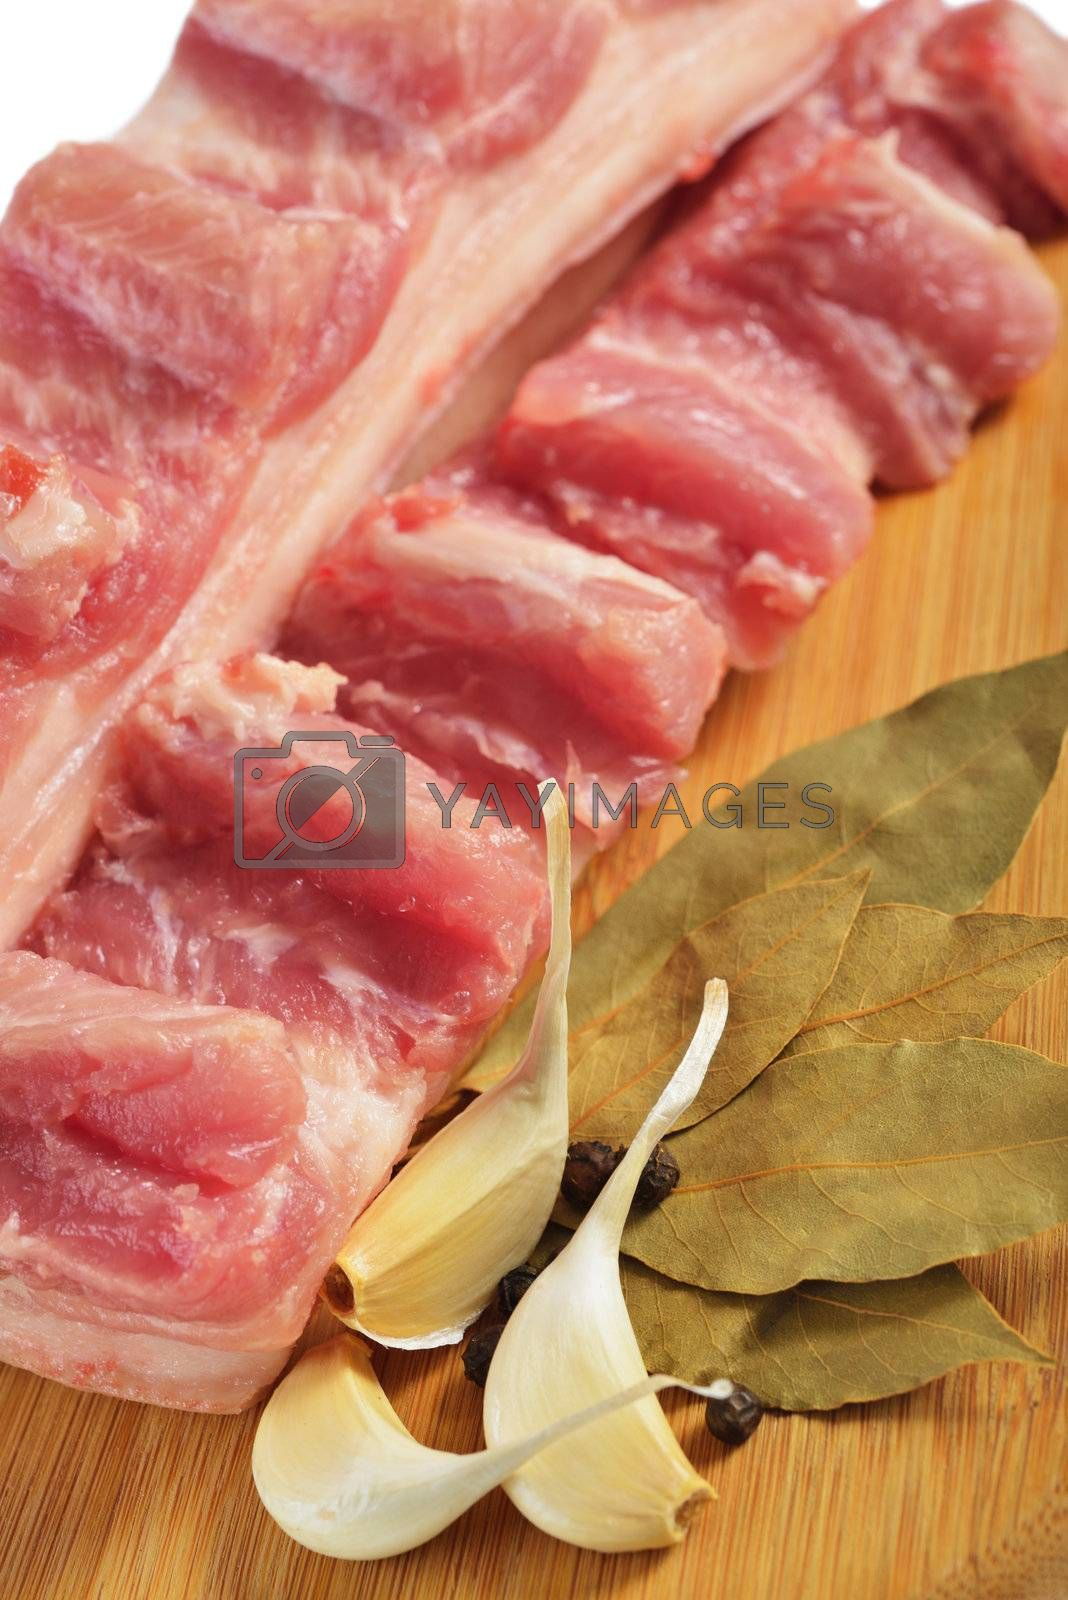 Raw bacon with ribs on a wooden cutting board.